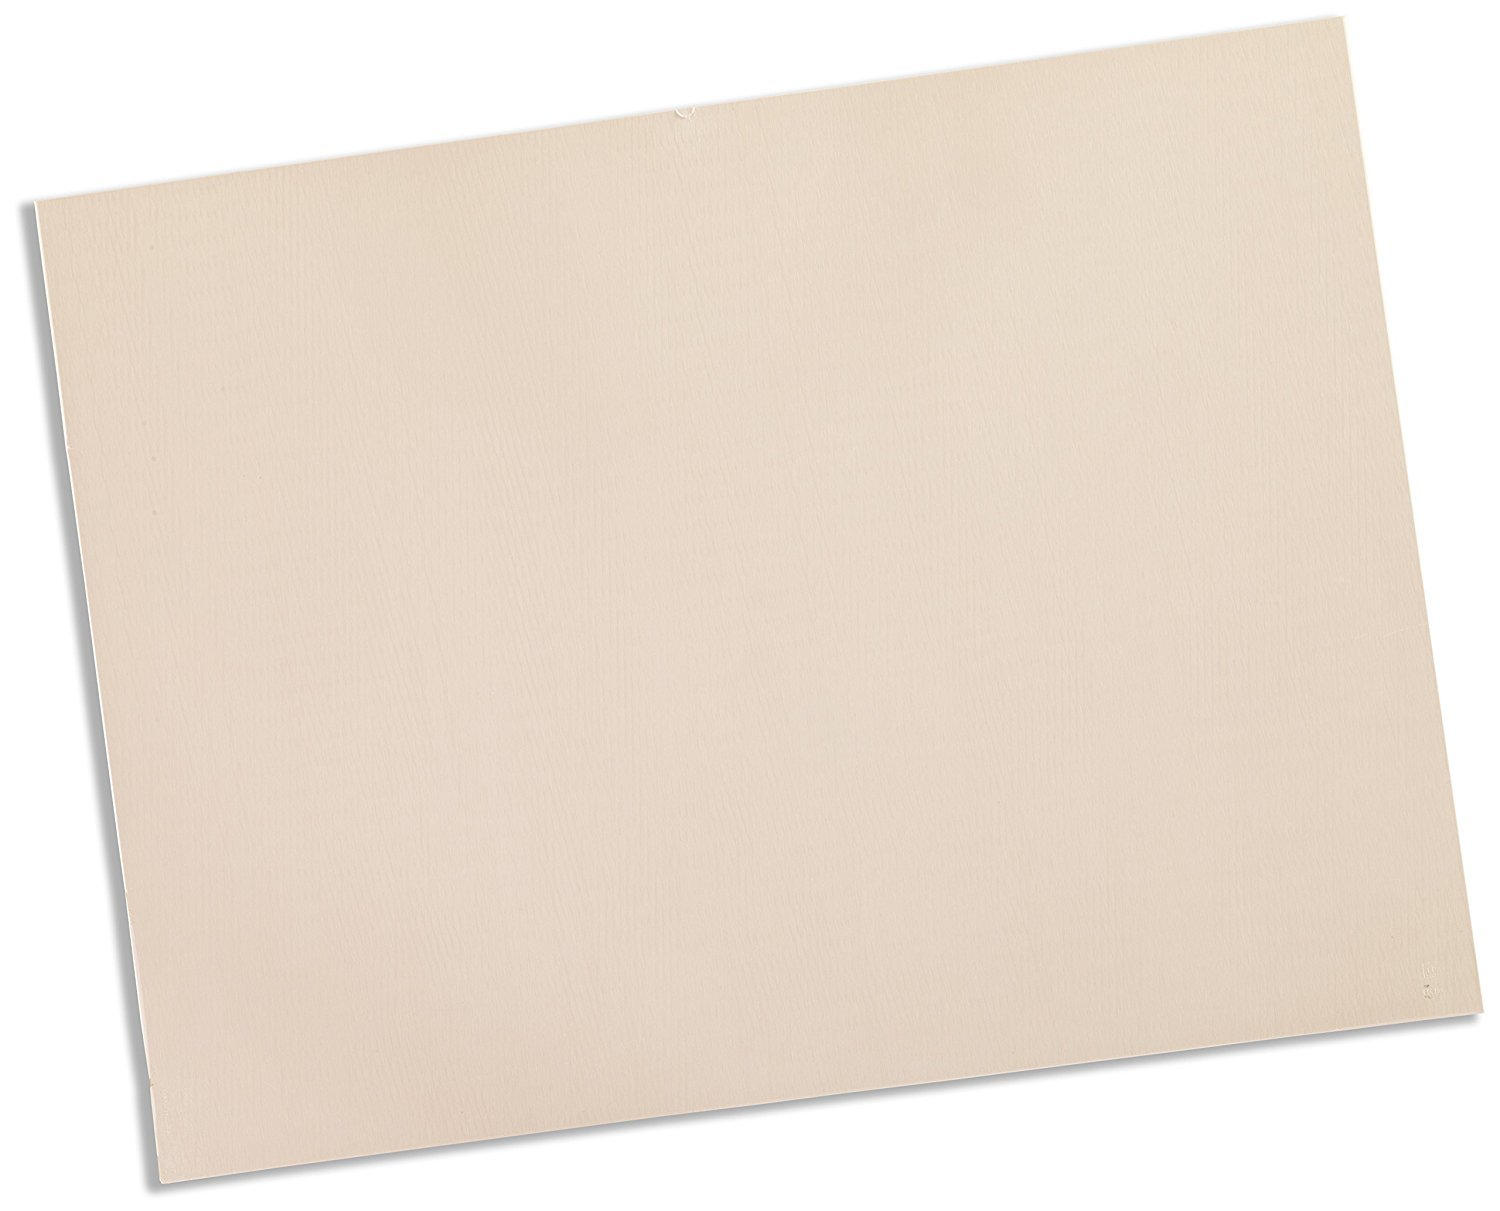 Rolyan Splinting Material Sheets, Tailor Splint, Beige, 3/32'' x 18'' x 24'', 1% Perforated, 4 Sheets